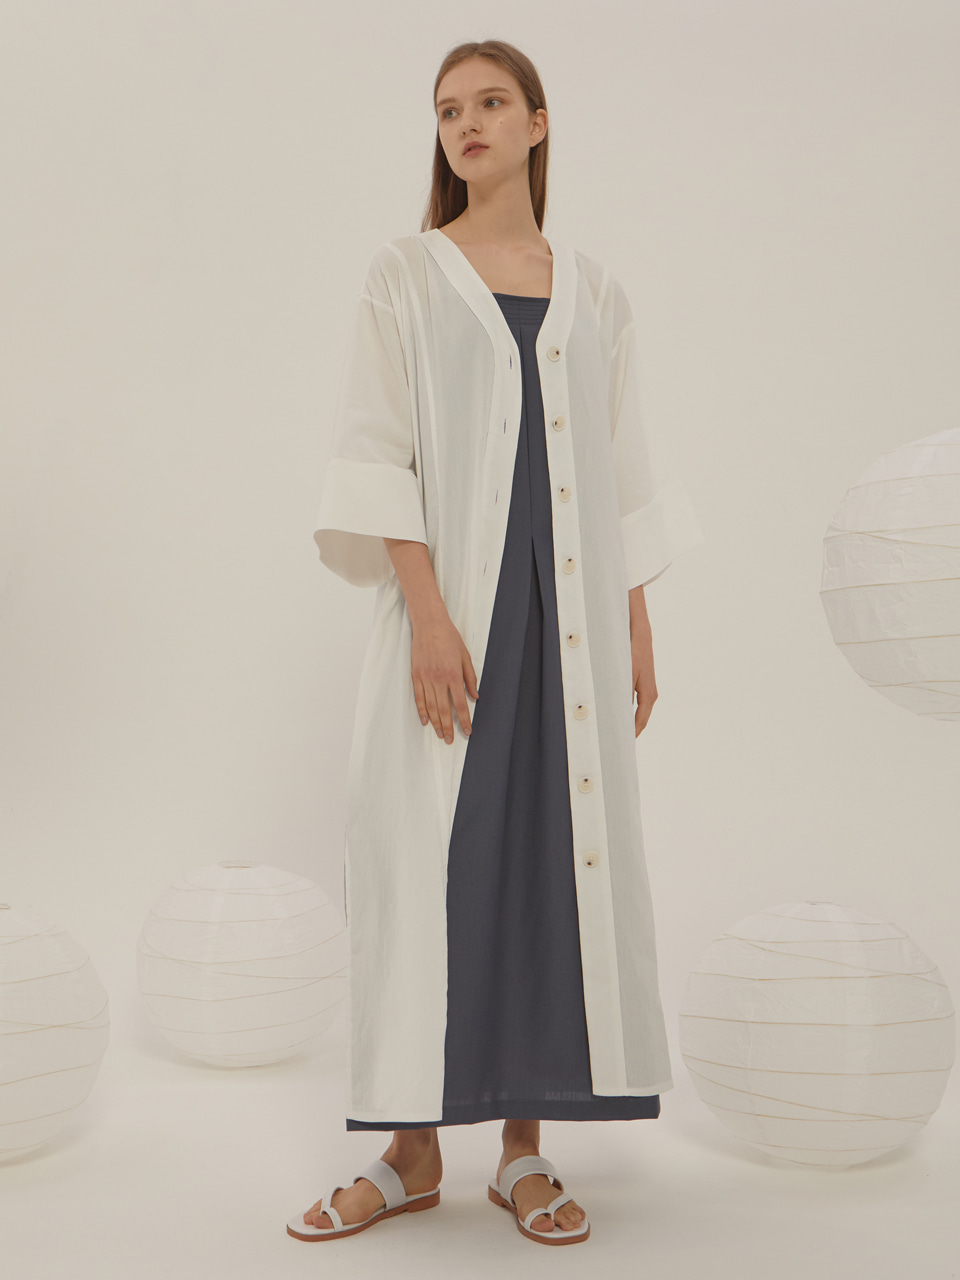 V-NECK BUTTON DRESS_White / Out of Stock